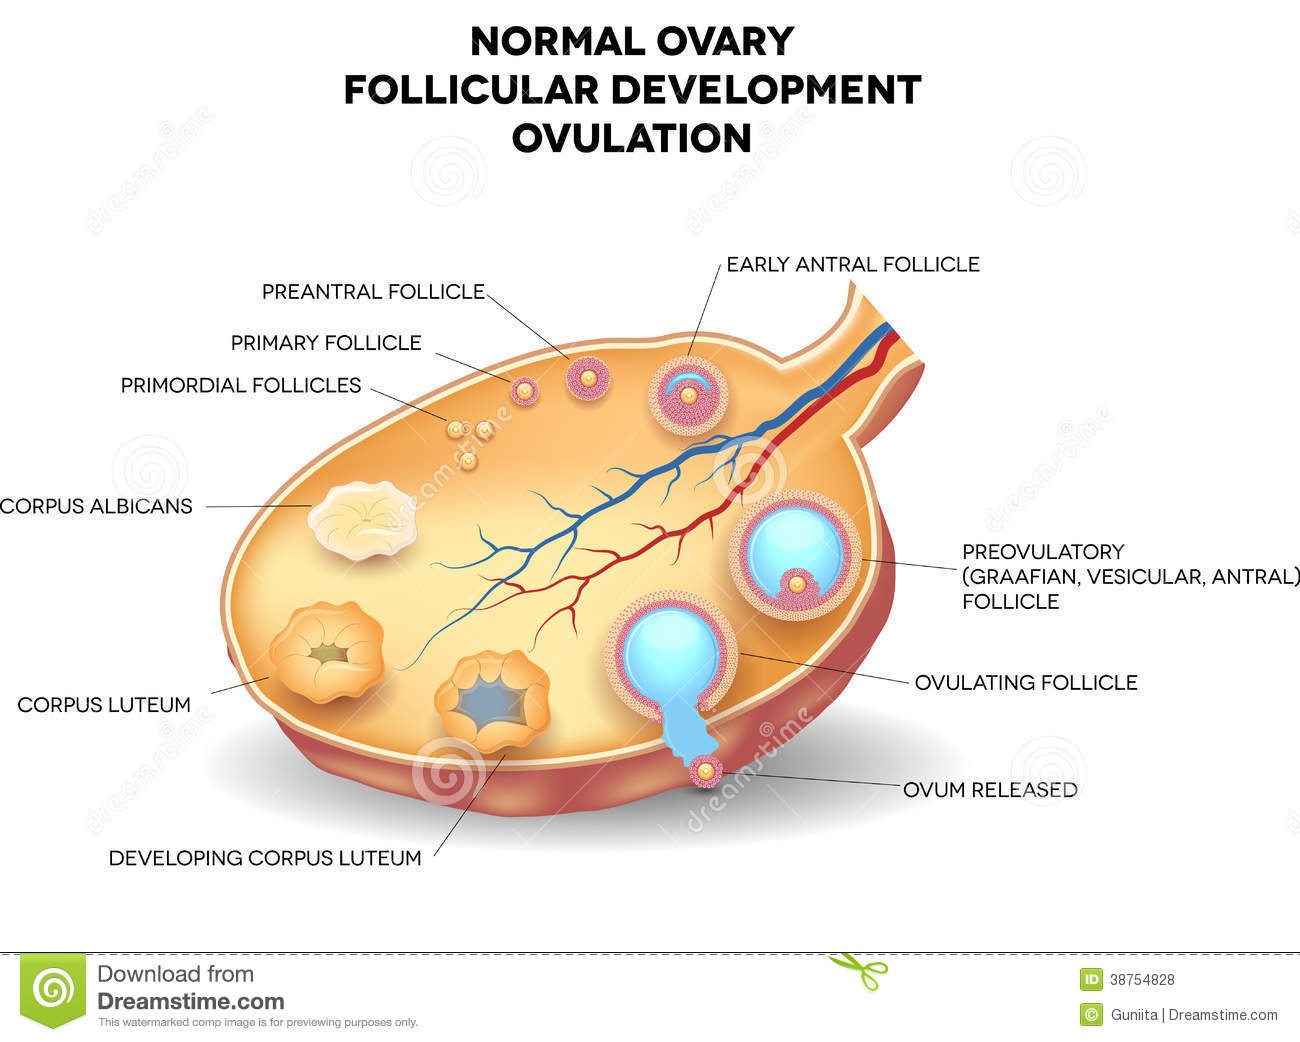 hight resolution of normal ovary follicular development and ovulation ovum is released from the ovarian follicles